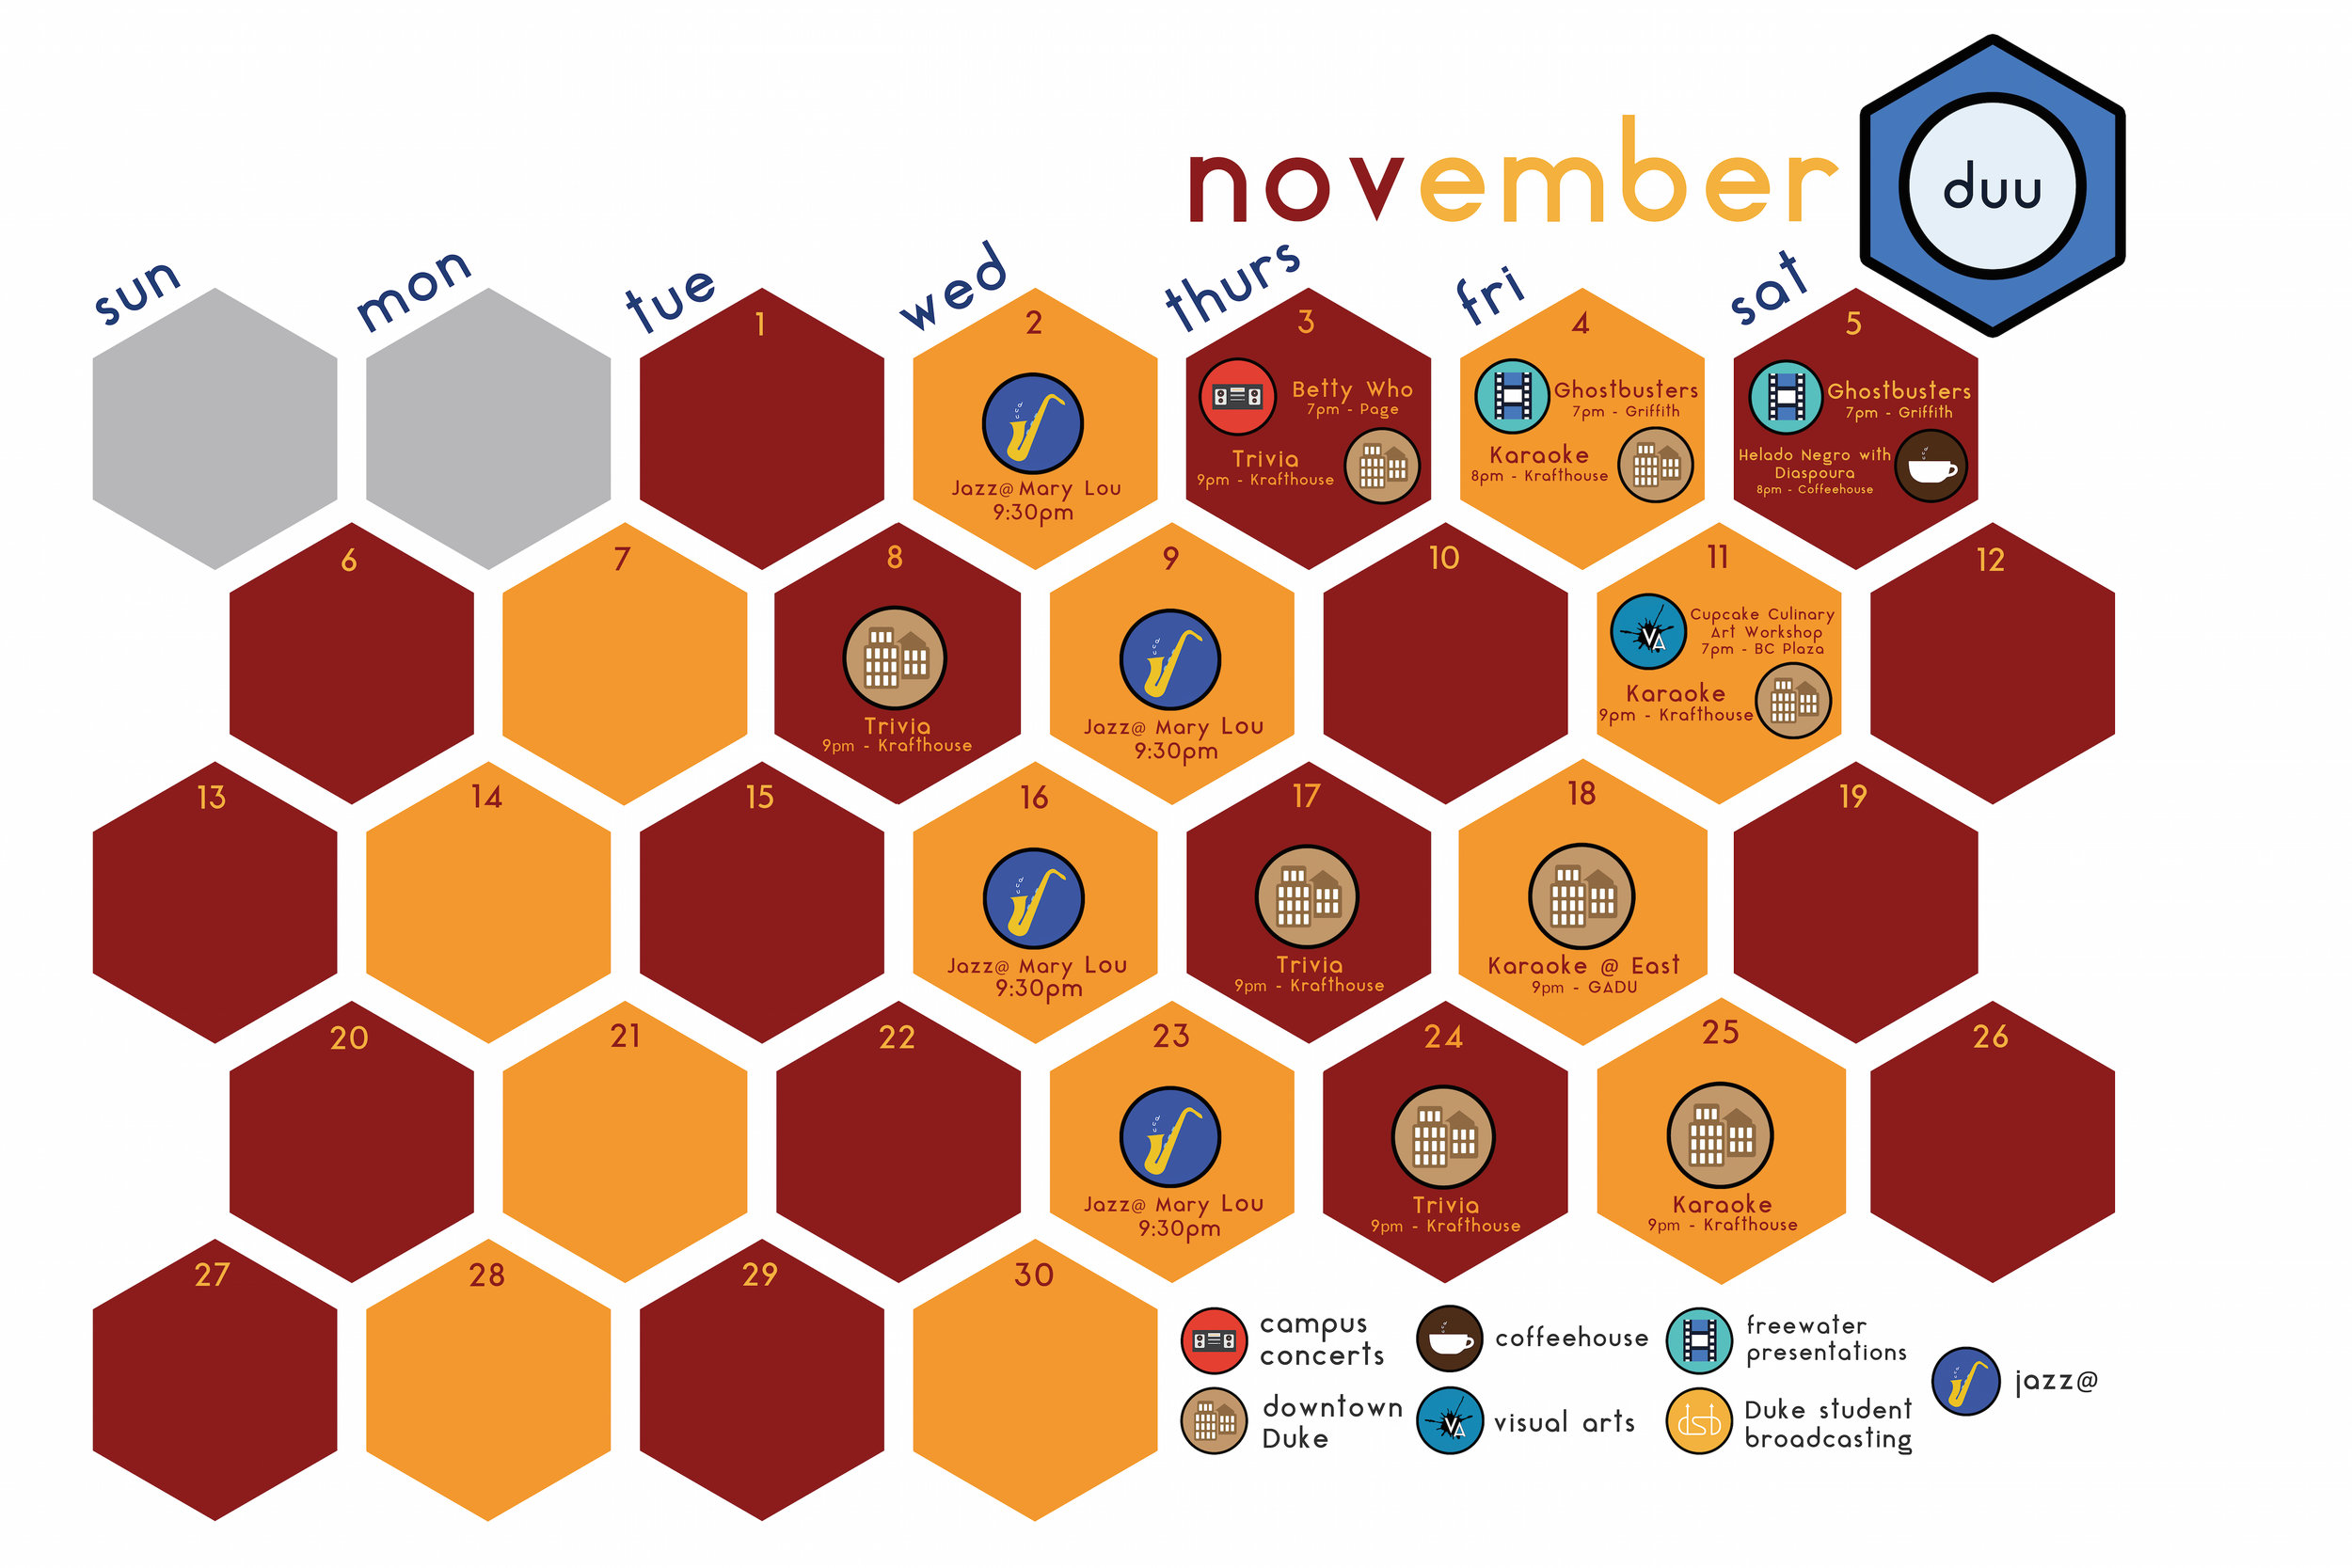 Calendar decal that displays all DUU sponsored events happening each month. View the design process here!  [Design team: Sonya Zhang, Peter Luo, Shreya Shankar]